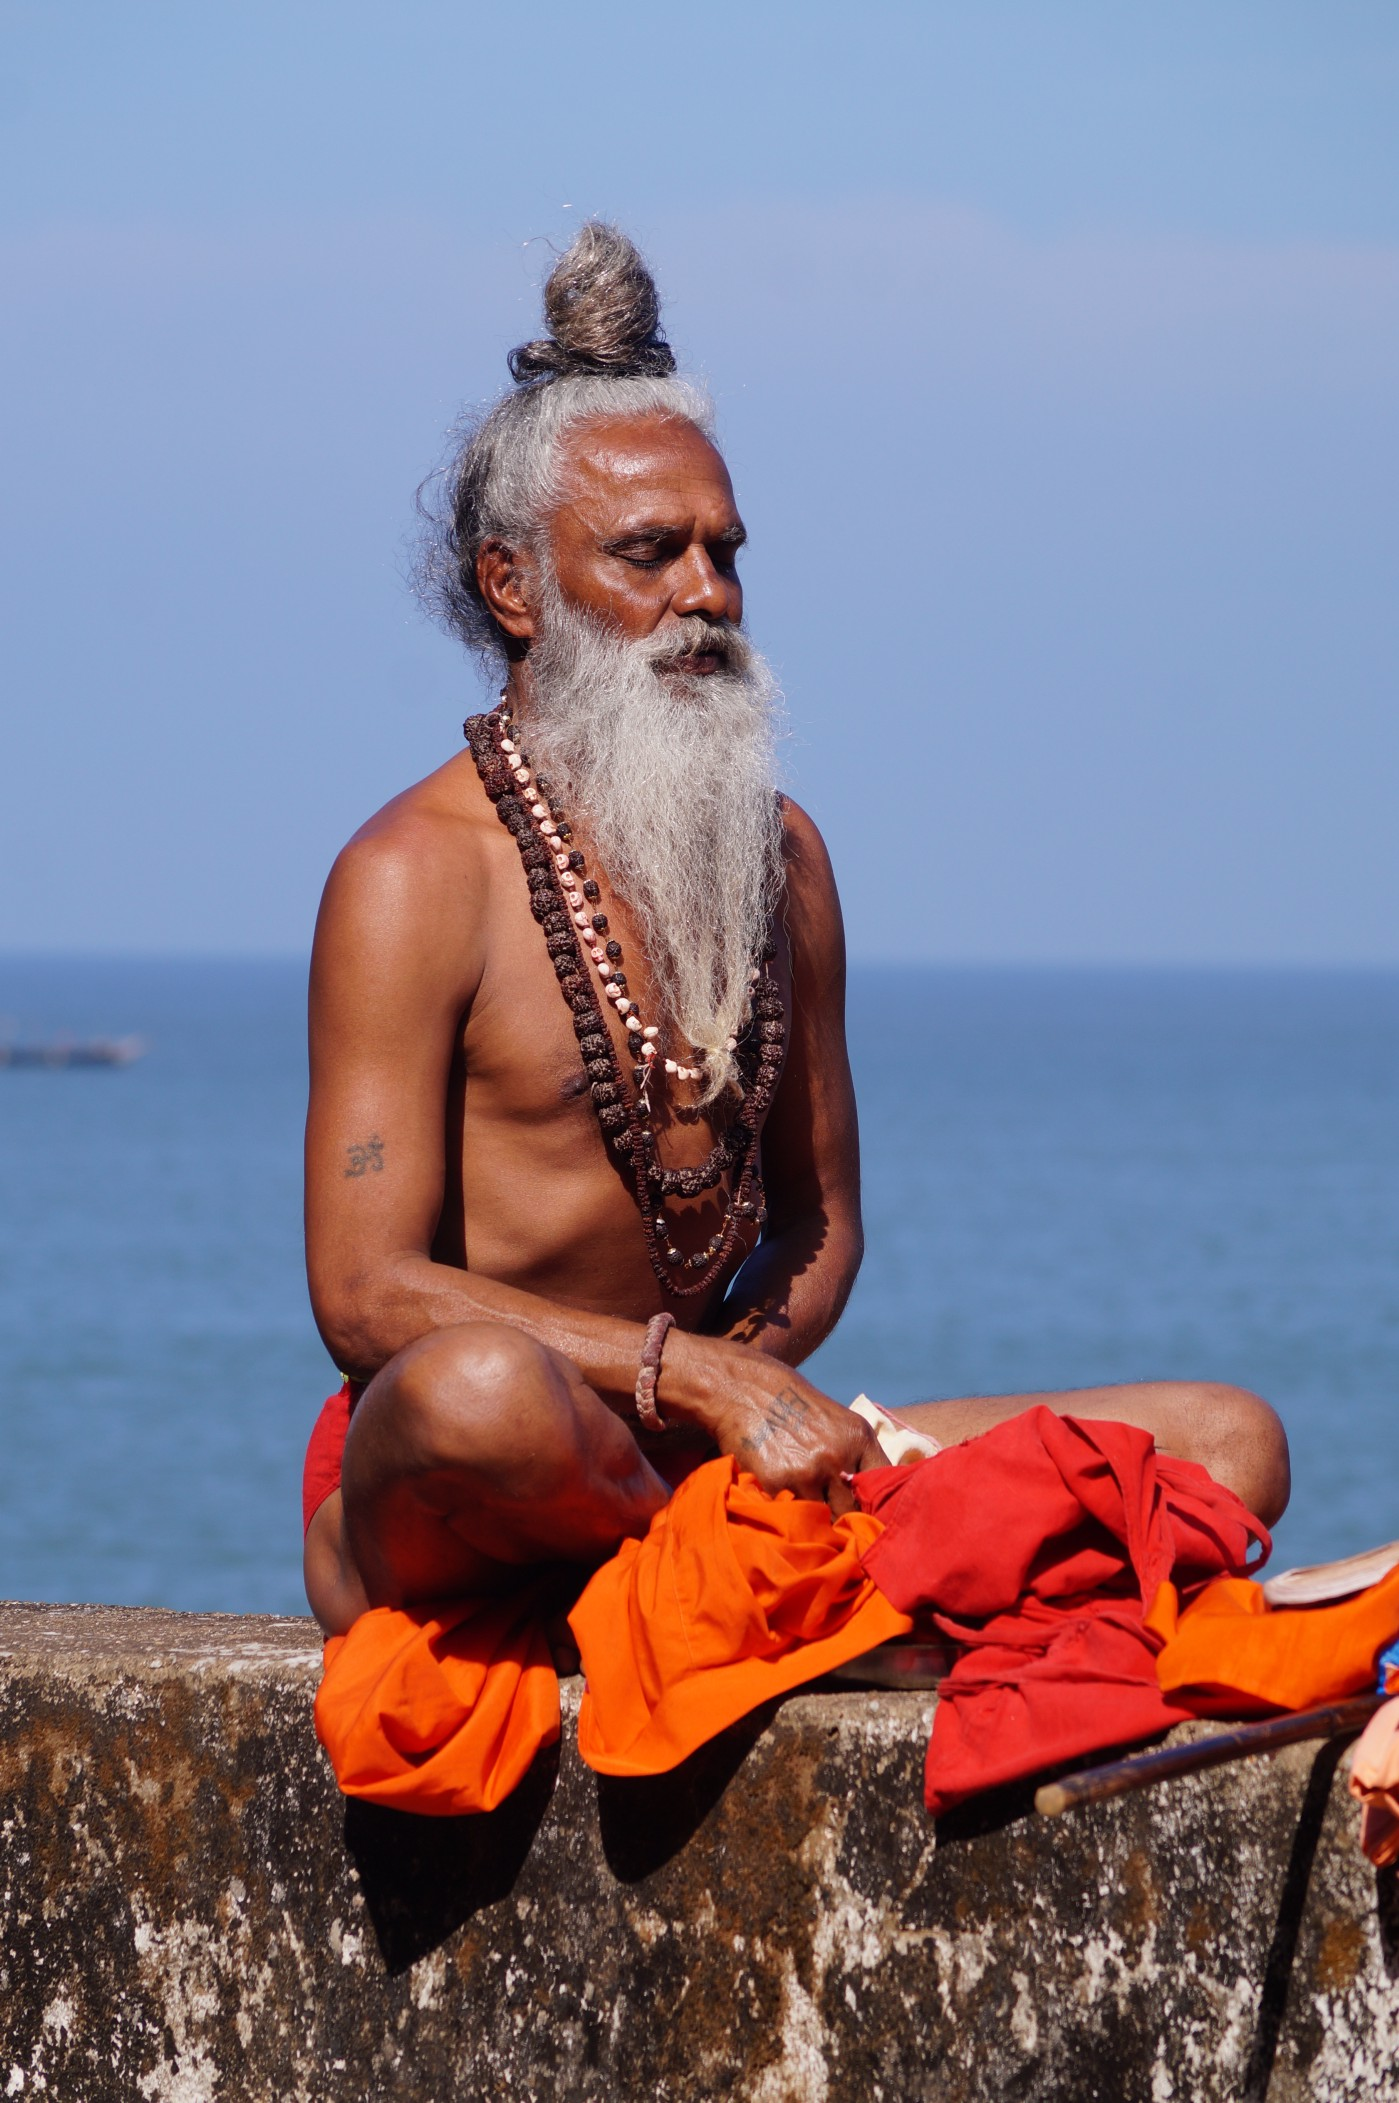 The image is of an indian yogi meditating on a wall near the sea shore.